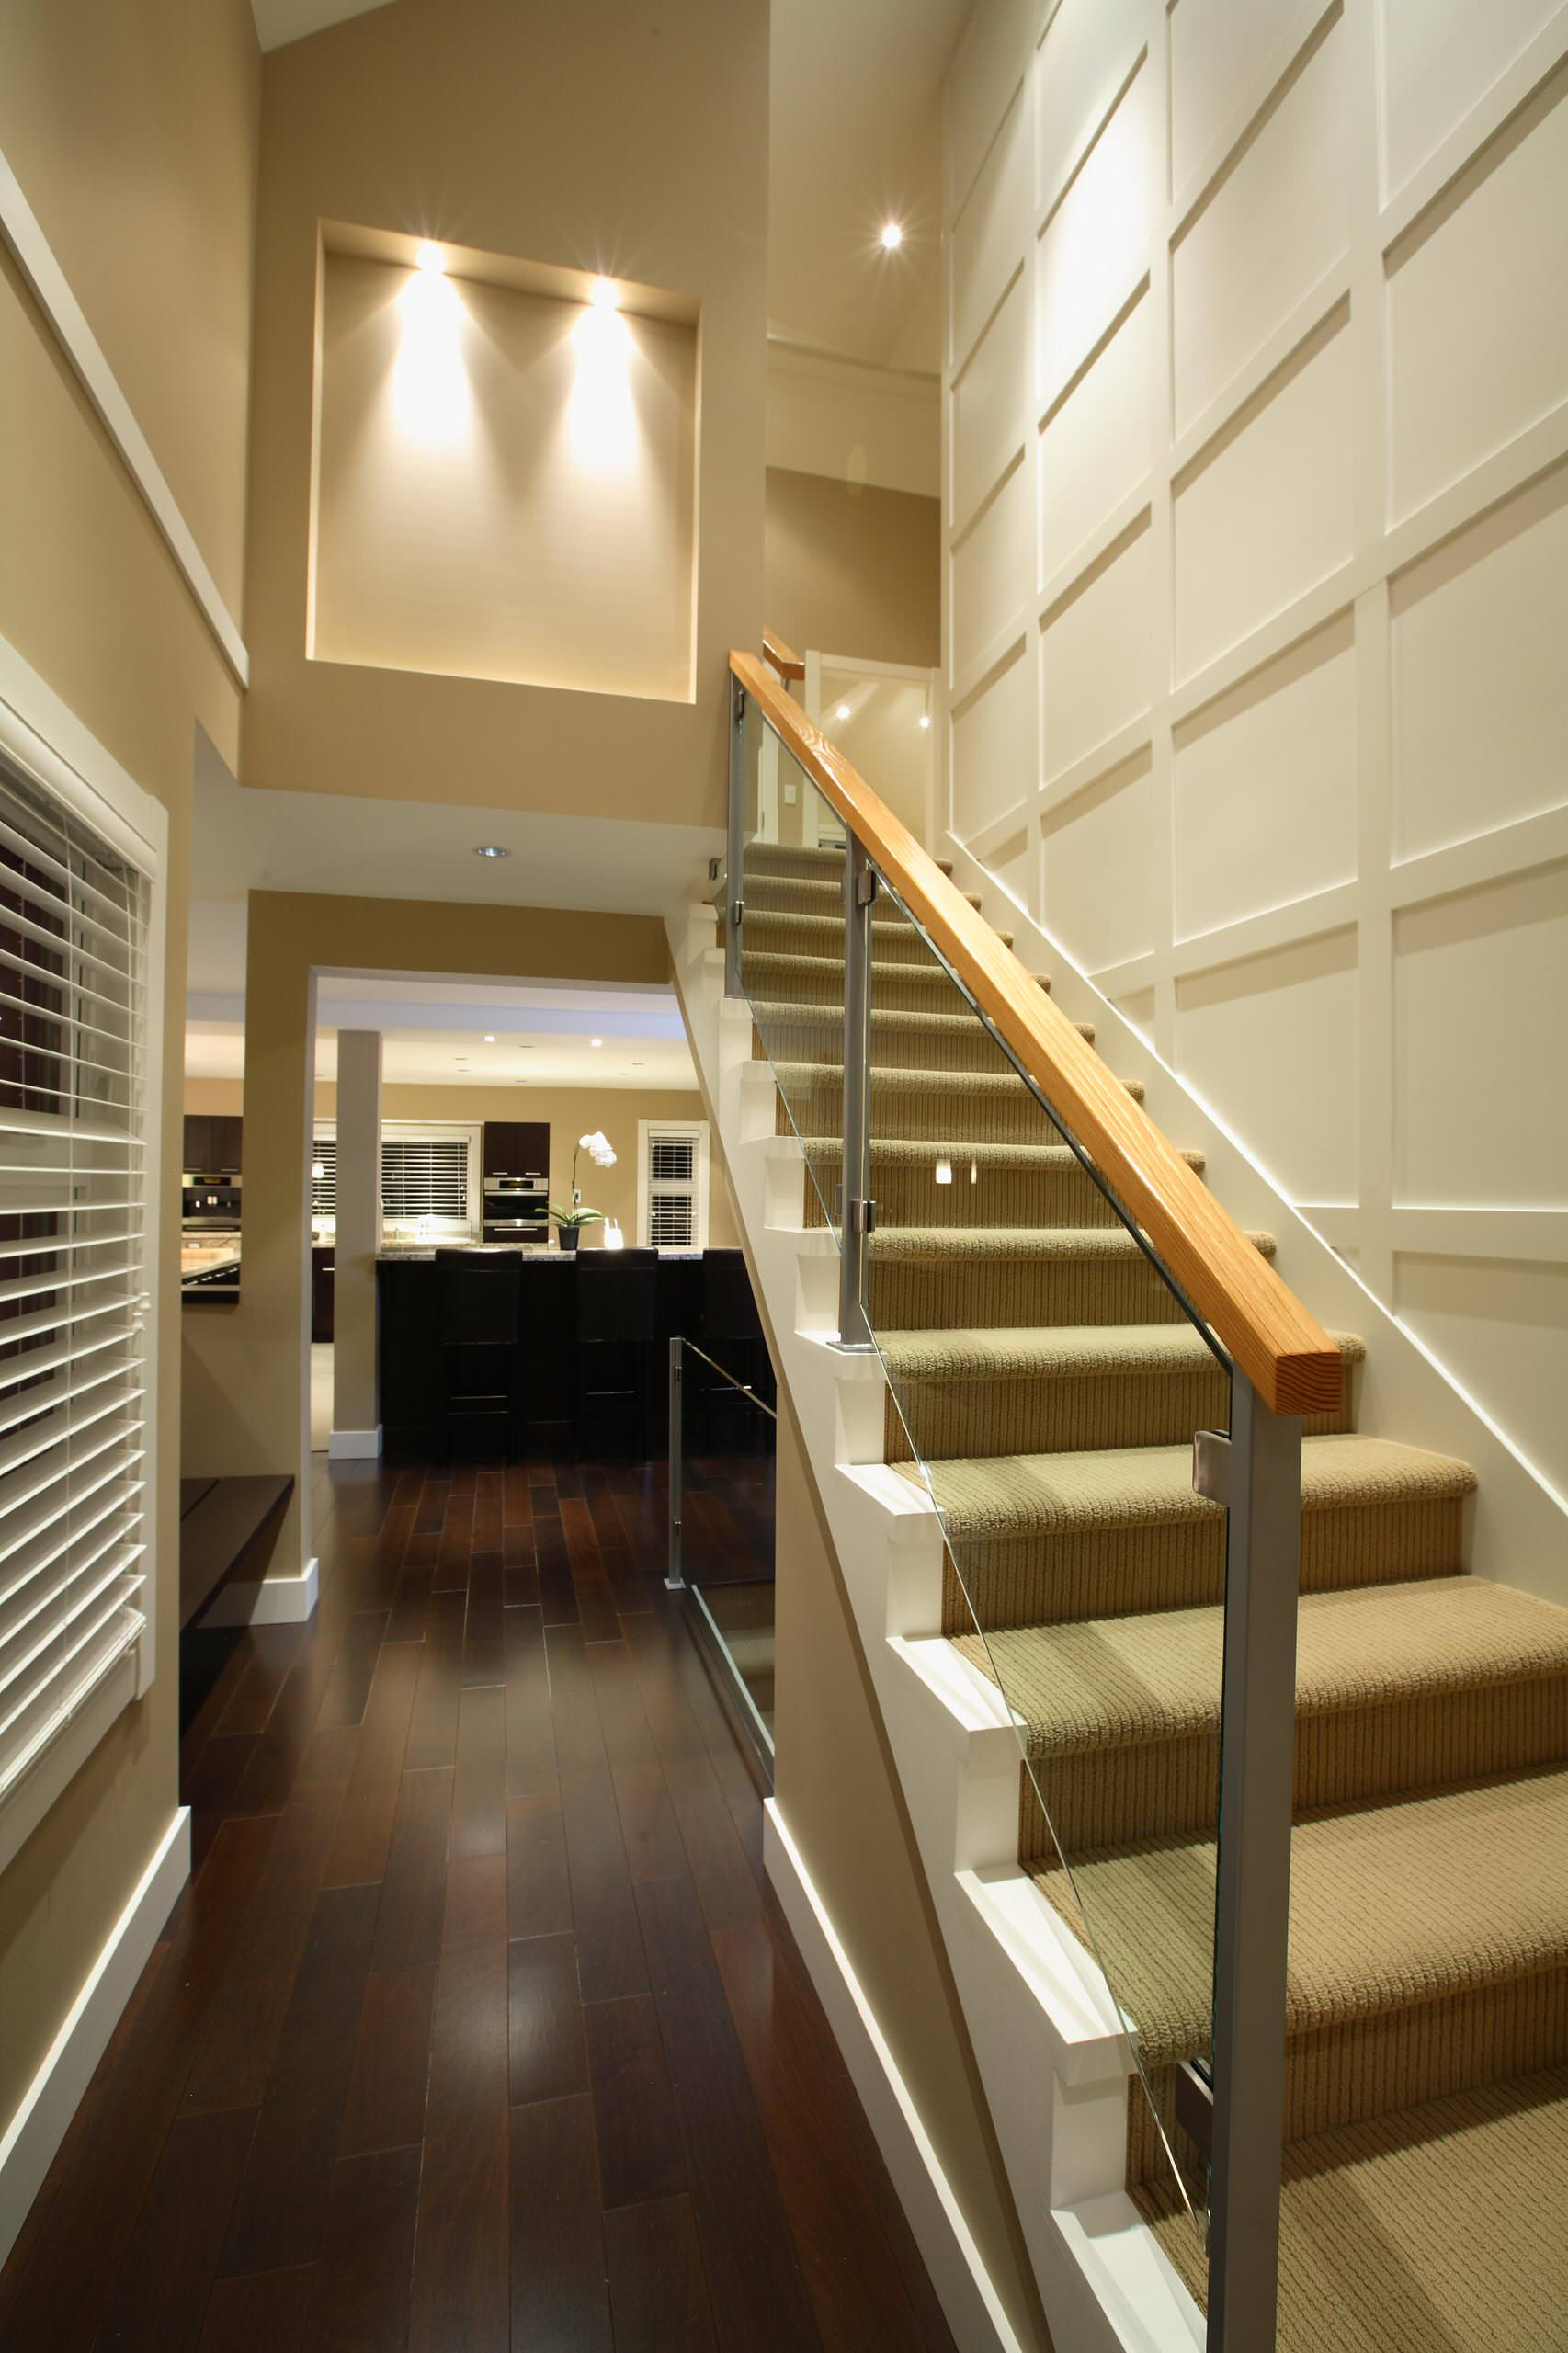 75 Beautiful Painted Staircase Pictures Ideas April 2021 Houzz